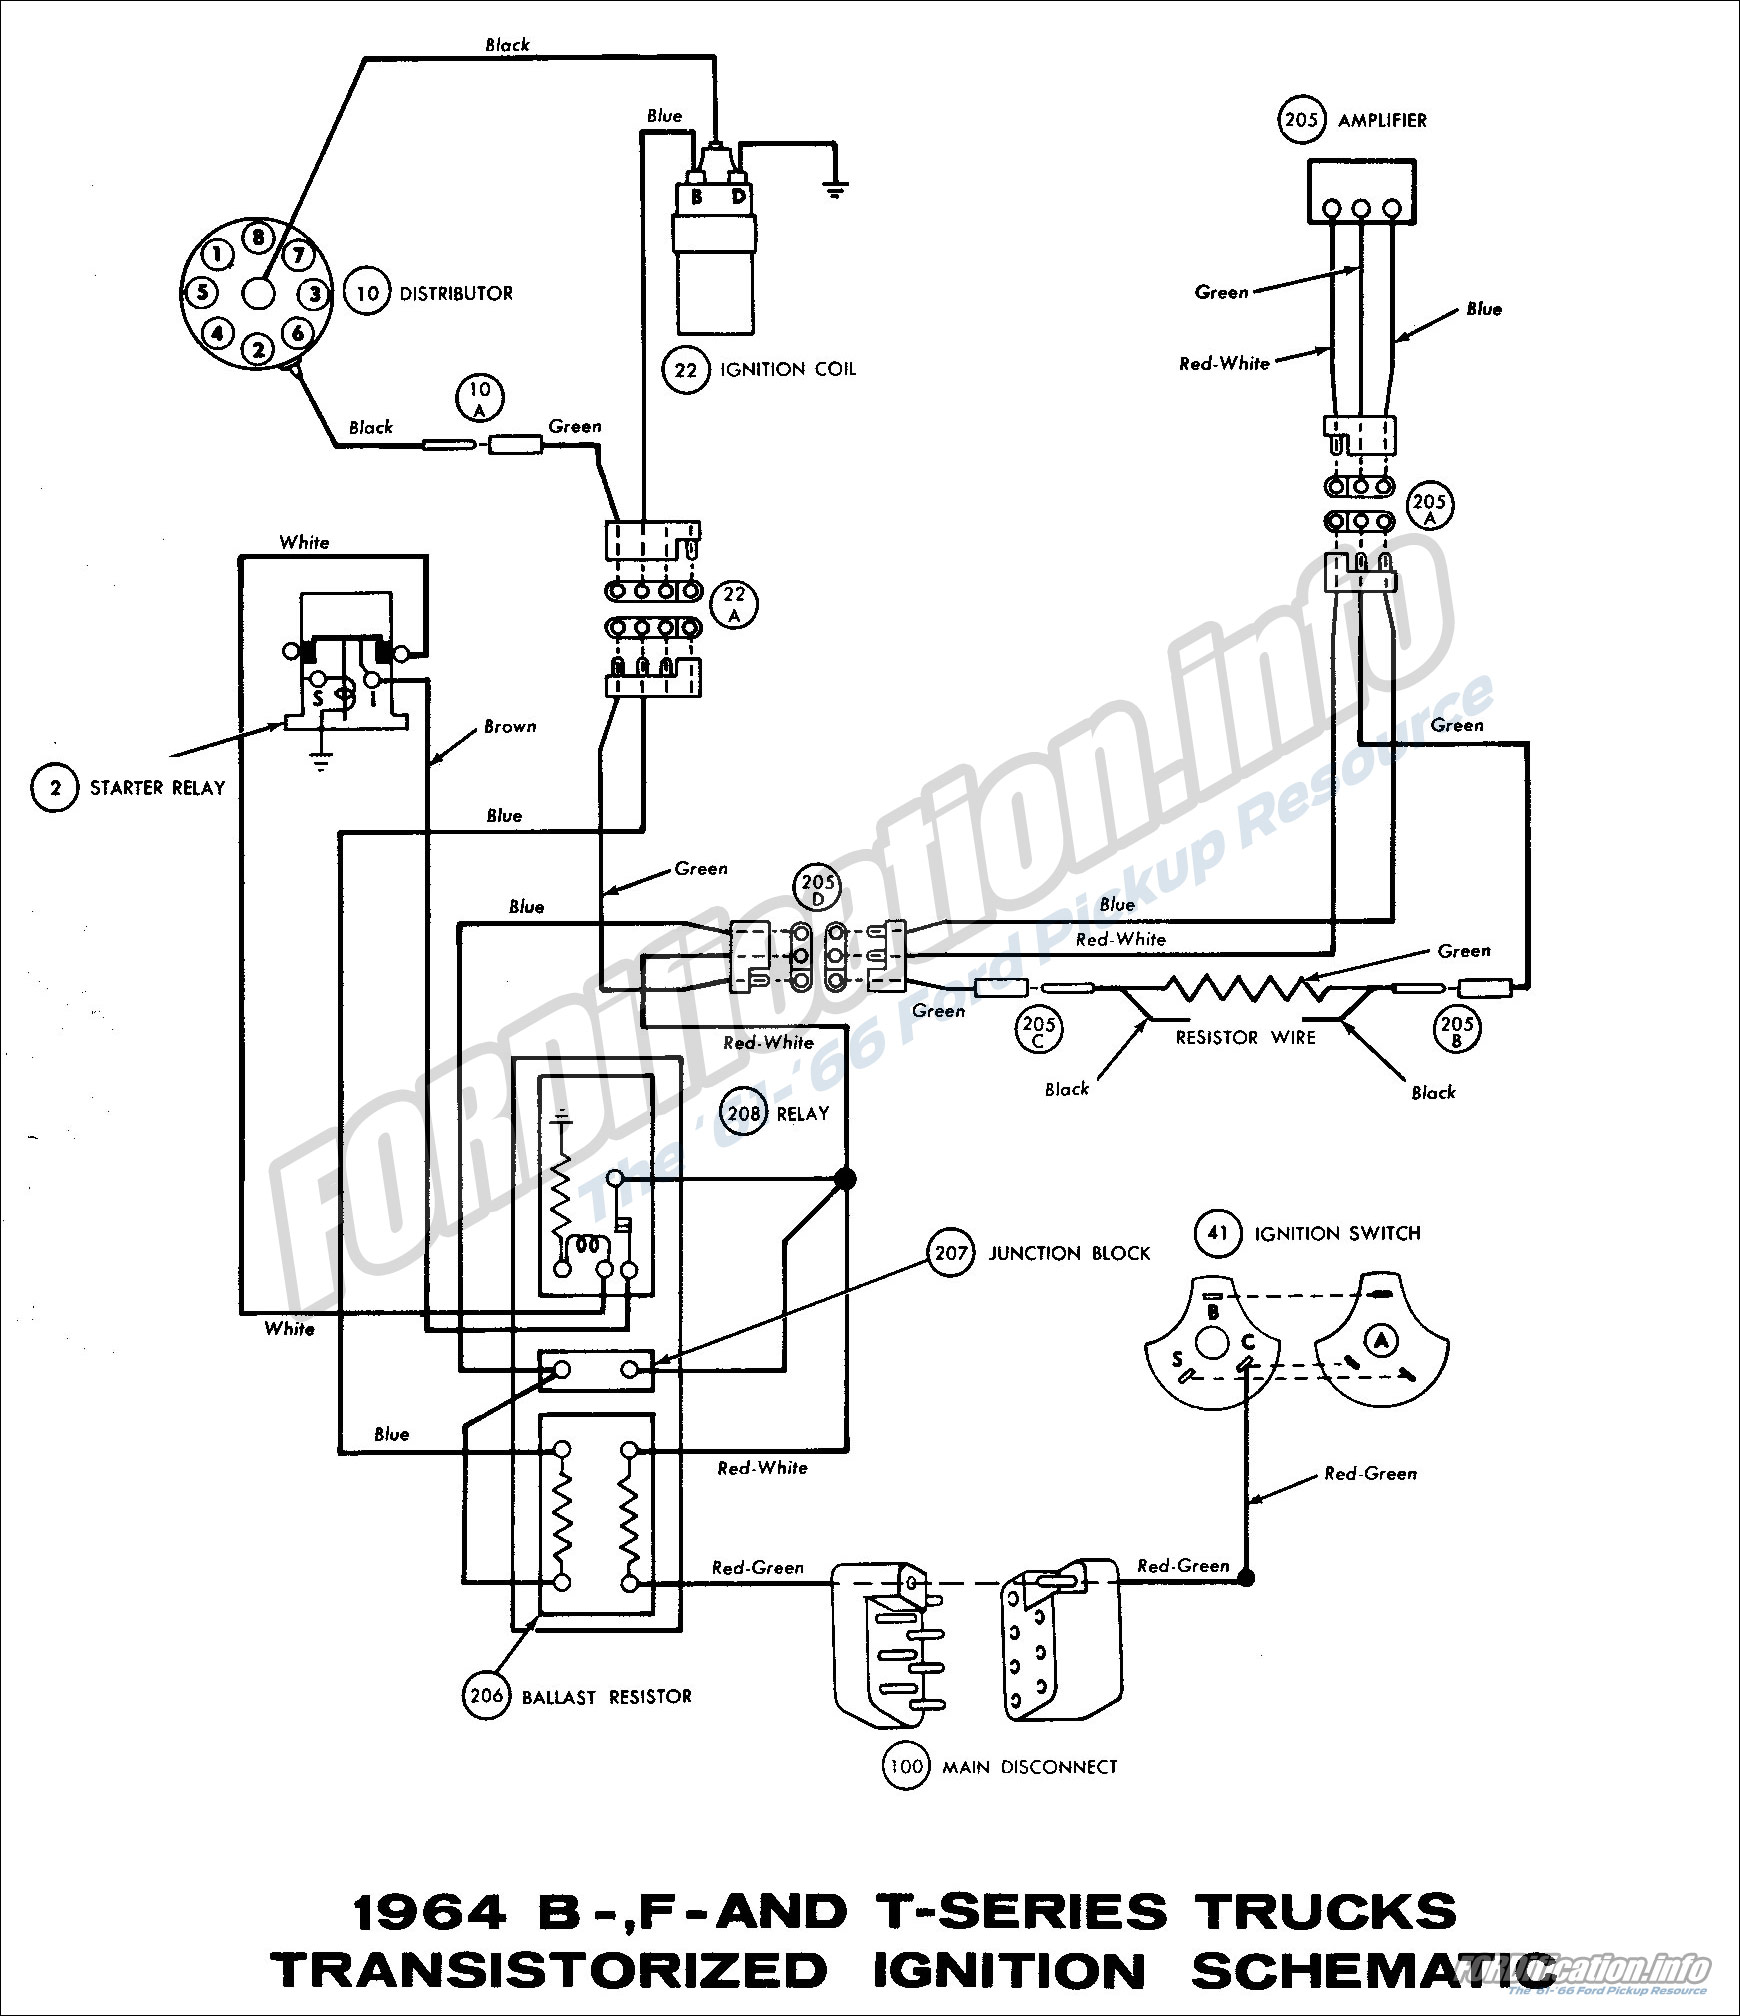 1941 ford coil wiring diagram | wiring library gm ignition wiring diagram 1964 gm ignition wiring diagram #10